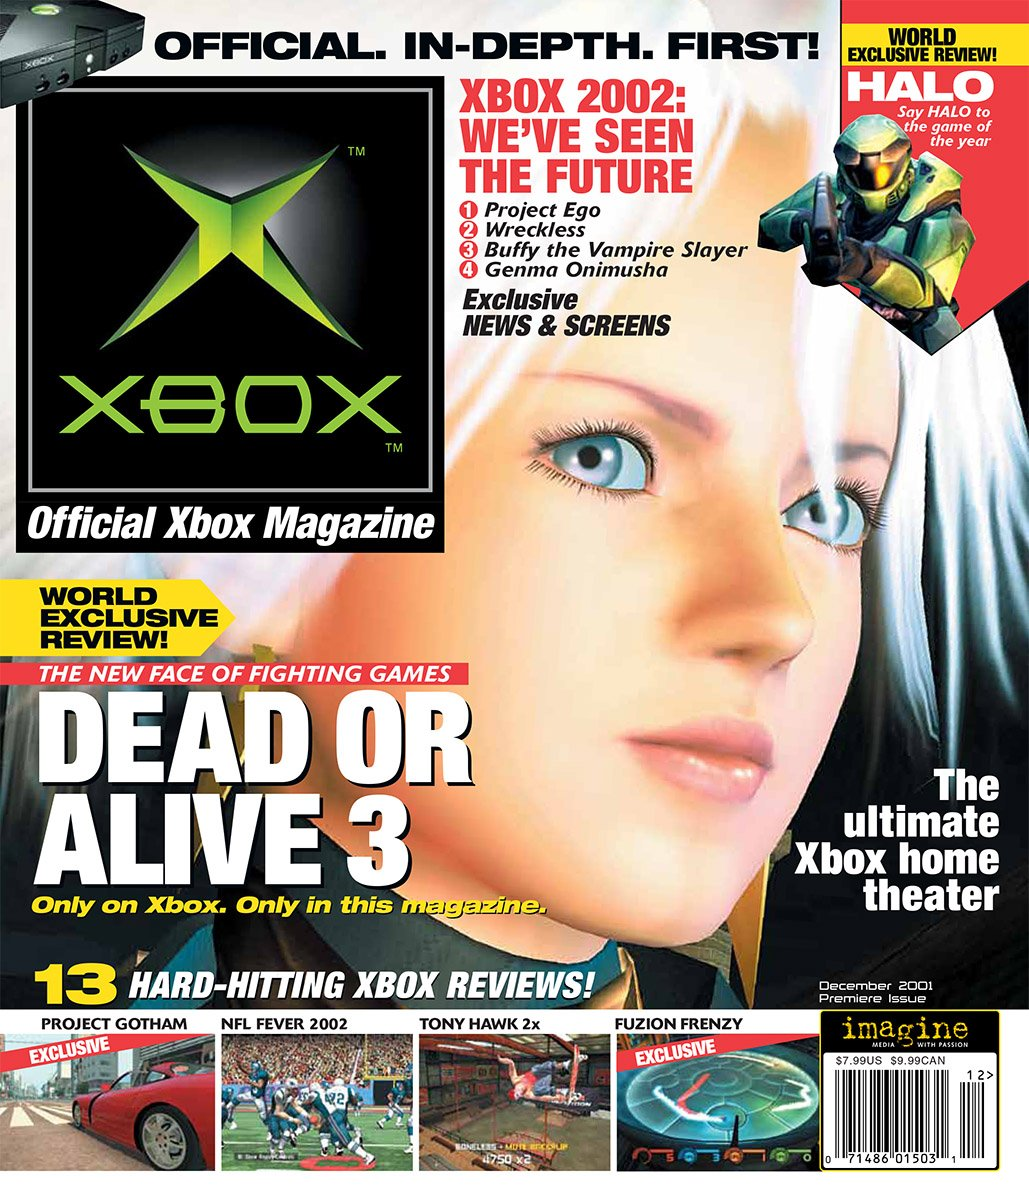 Official Xbox Magazine 001 December 2001